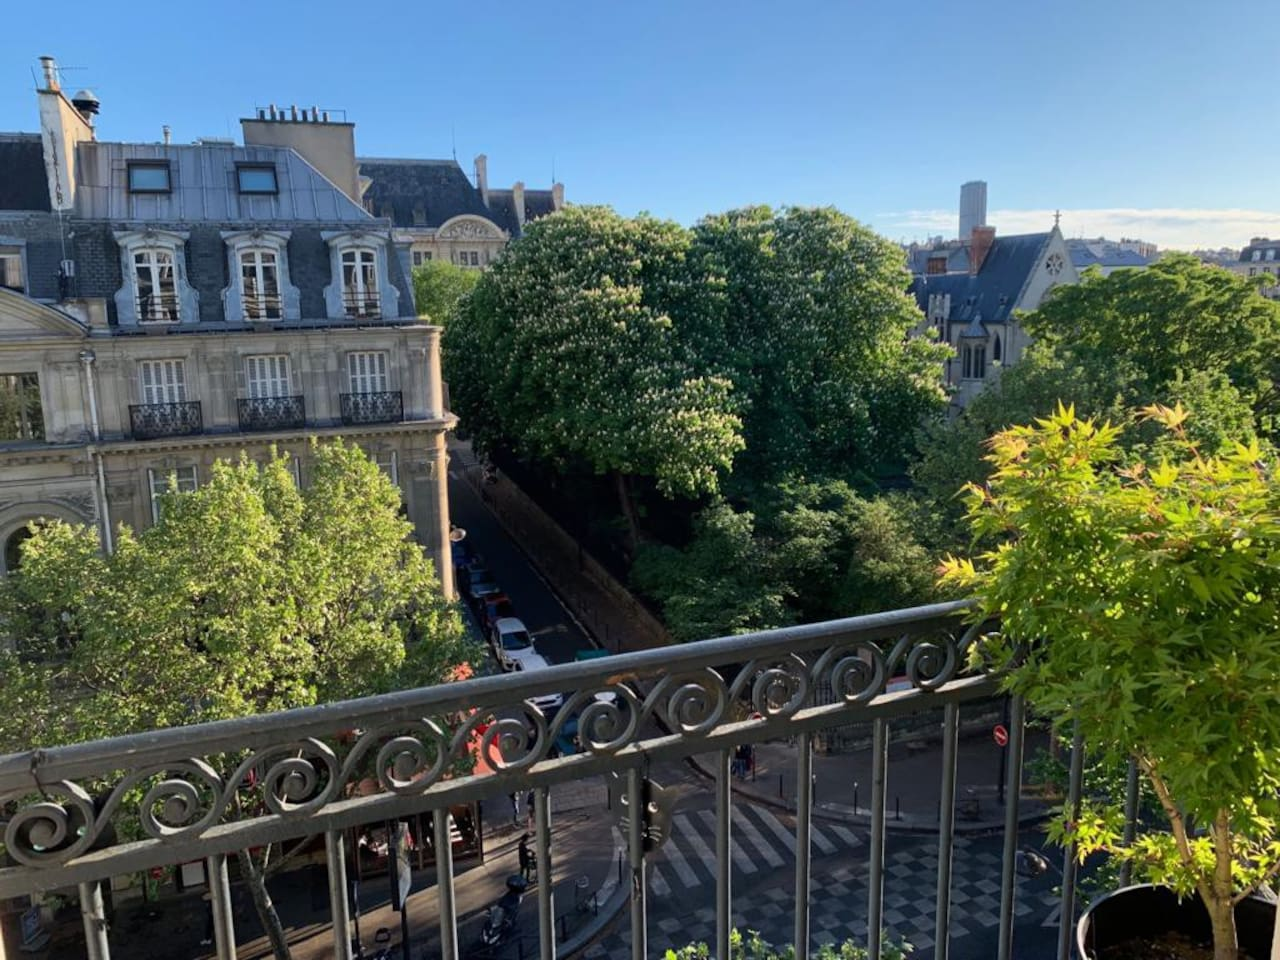 View from the balcony with Cluny church, La Sorbonne and Tour Montparnasse